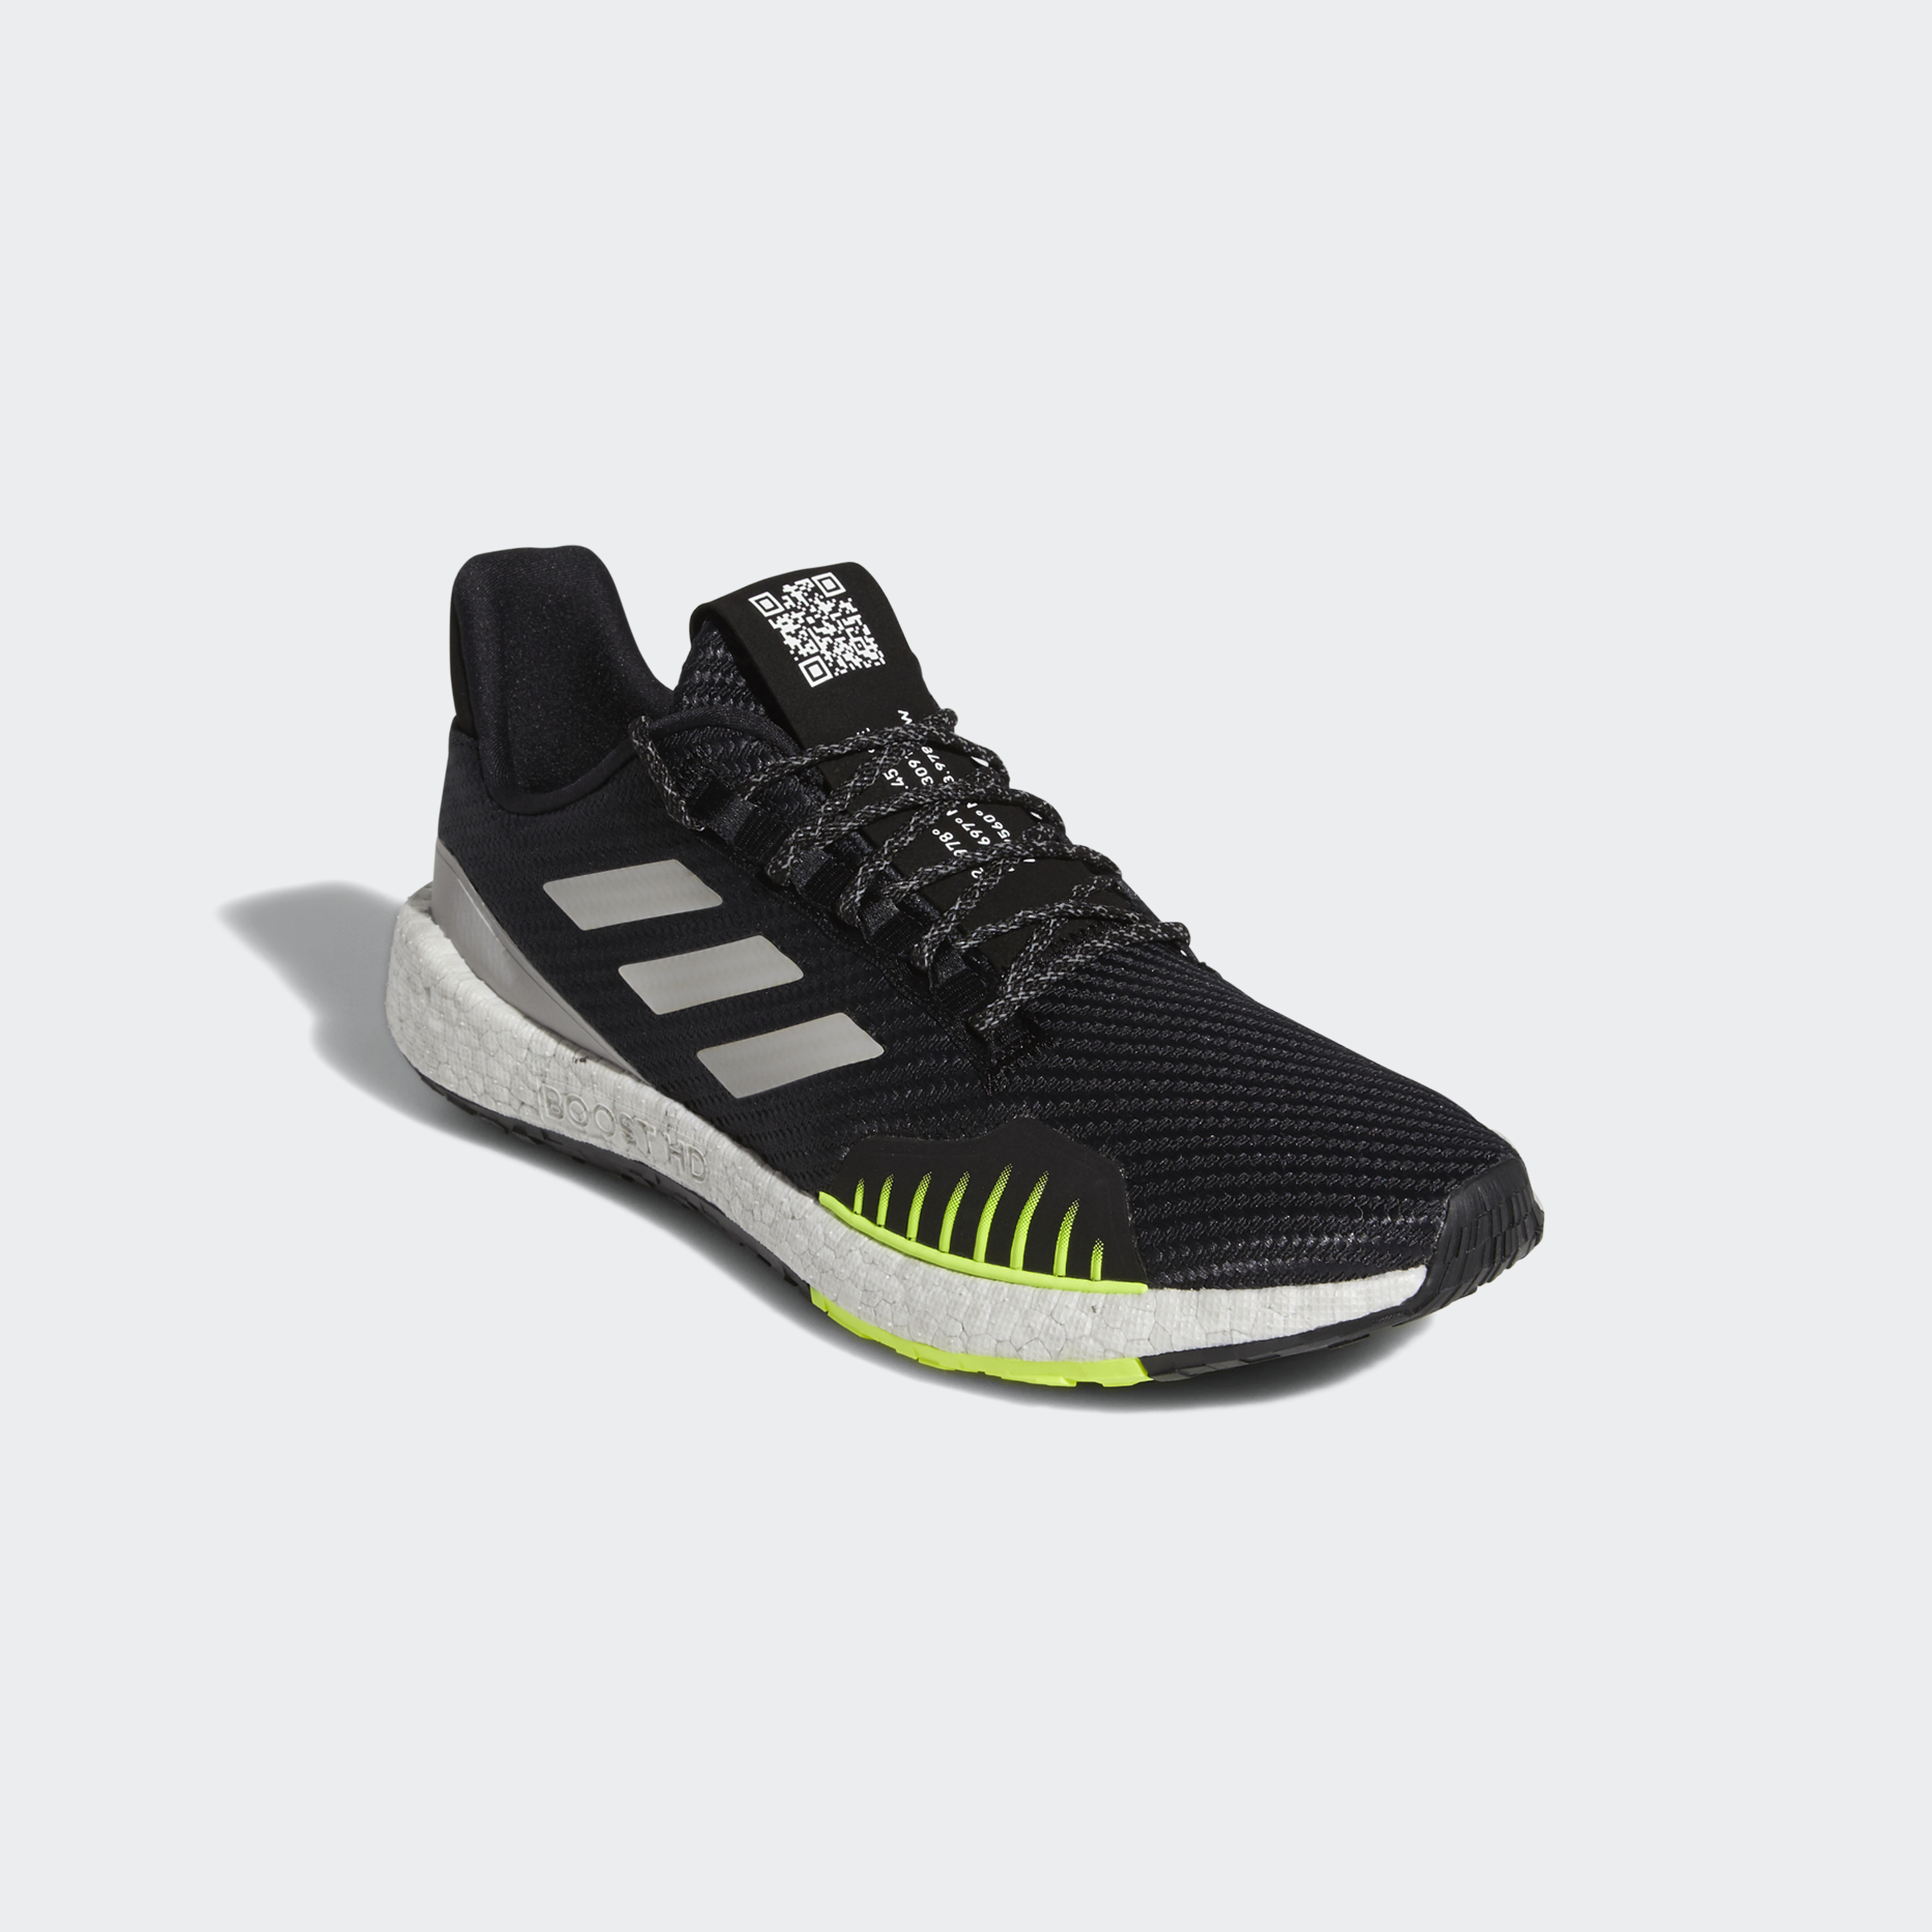 miniature 15 - adidas Pulseboost HD Winter Shoes  Athletic & Sneakers